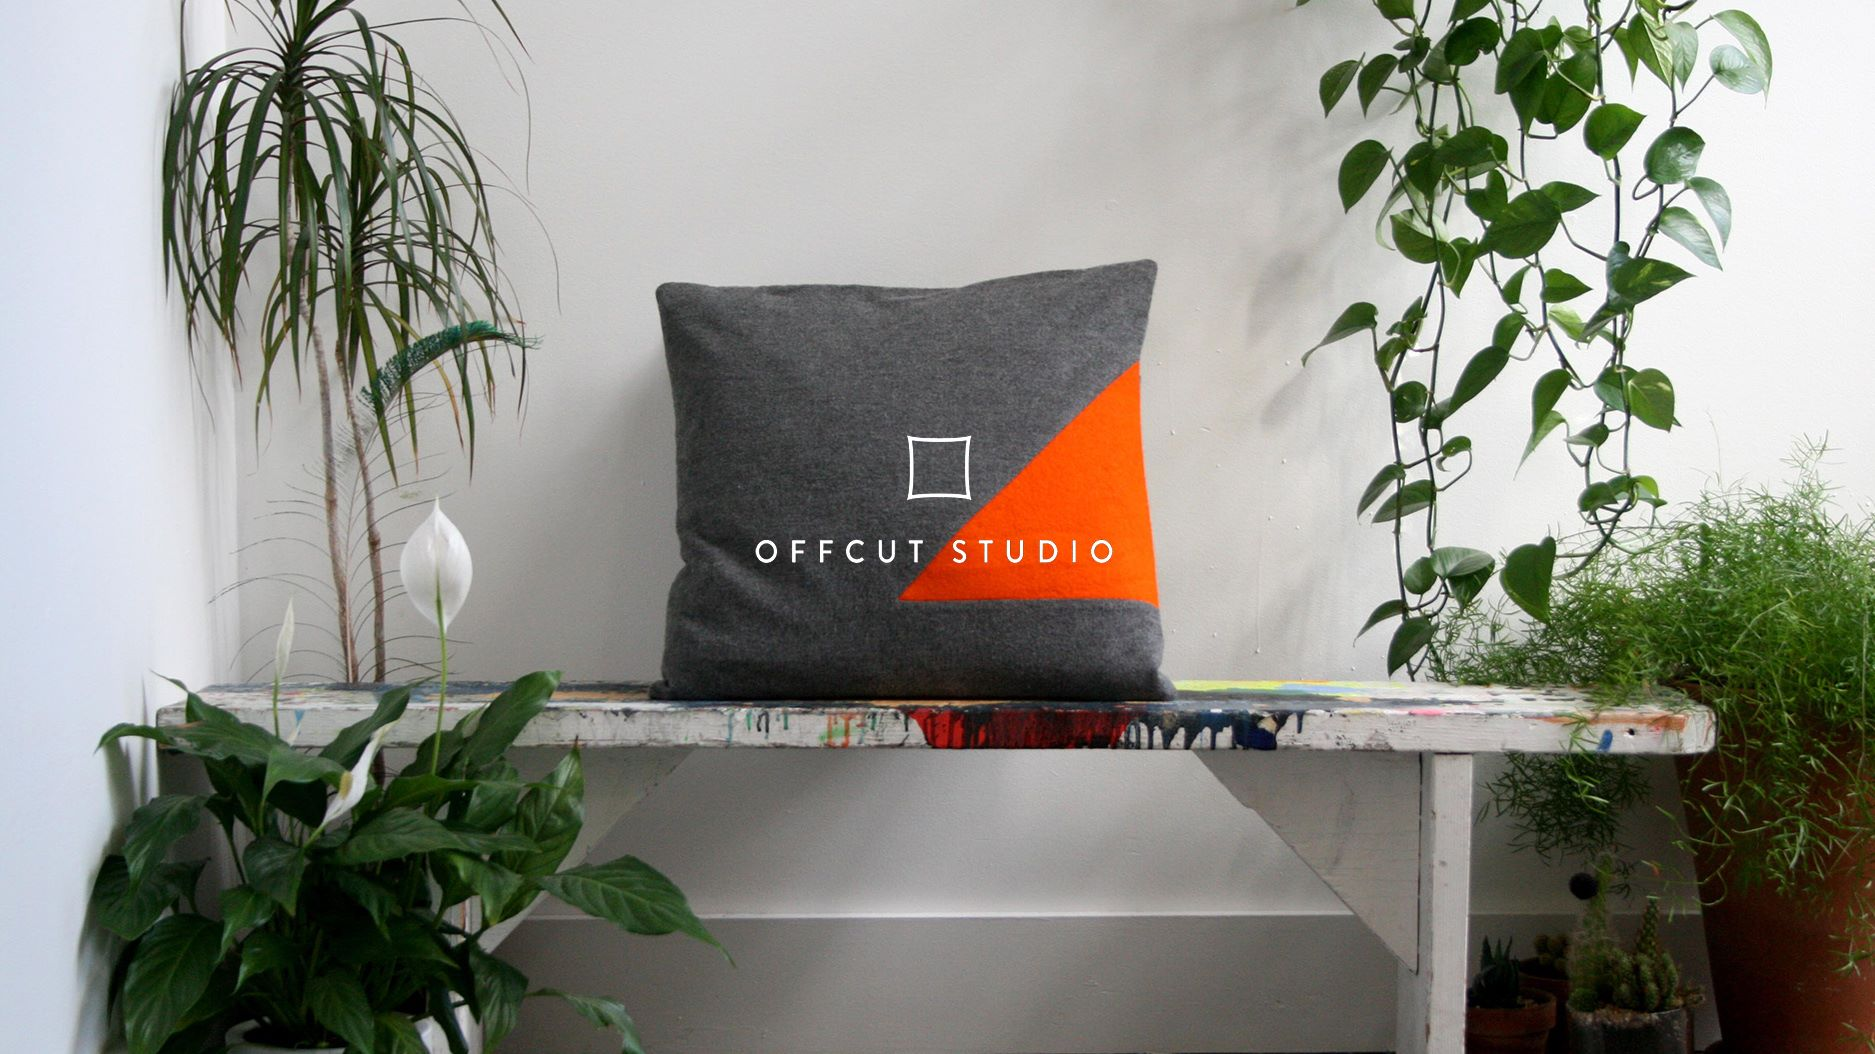 OFFCUT.STUDIO - At Offcut Studio we combine style, functionality and ethical sustainability to create beautiful things for your home. We celebrate colour, shape, pattern and texture through our designs, producing high quality items that are made to last and won't end up in landfill. Our ethos is to live, work and create with an ethically sustainable approach and our aim is to produce contemporary home accessories that provide a positive choice in a society where waste has become the norm.Fashion stylist, Russell Philip Peek opened Offcut Studio with a desire to become a zero to landfill fashion studio. Using his knowledge of bespoke garment construction, his experience of the luxury fashion industry and a consciousness of the human impact on the planet, he turned to the cushion as a way to reduce industry waste.We're interested in the history of our products as much as we are in their future, and each of them tells a story. From the inside out our products are made using recycled and responsibly sourced fabrics, meaning that every item is truly original and makes a low impact on the environment.